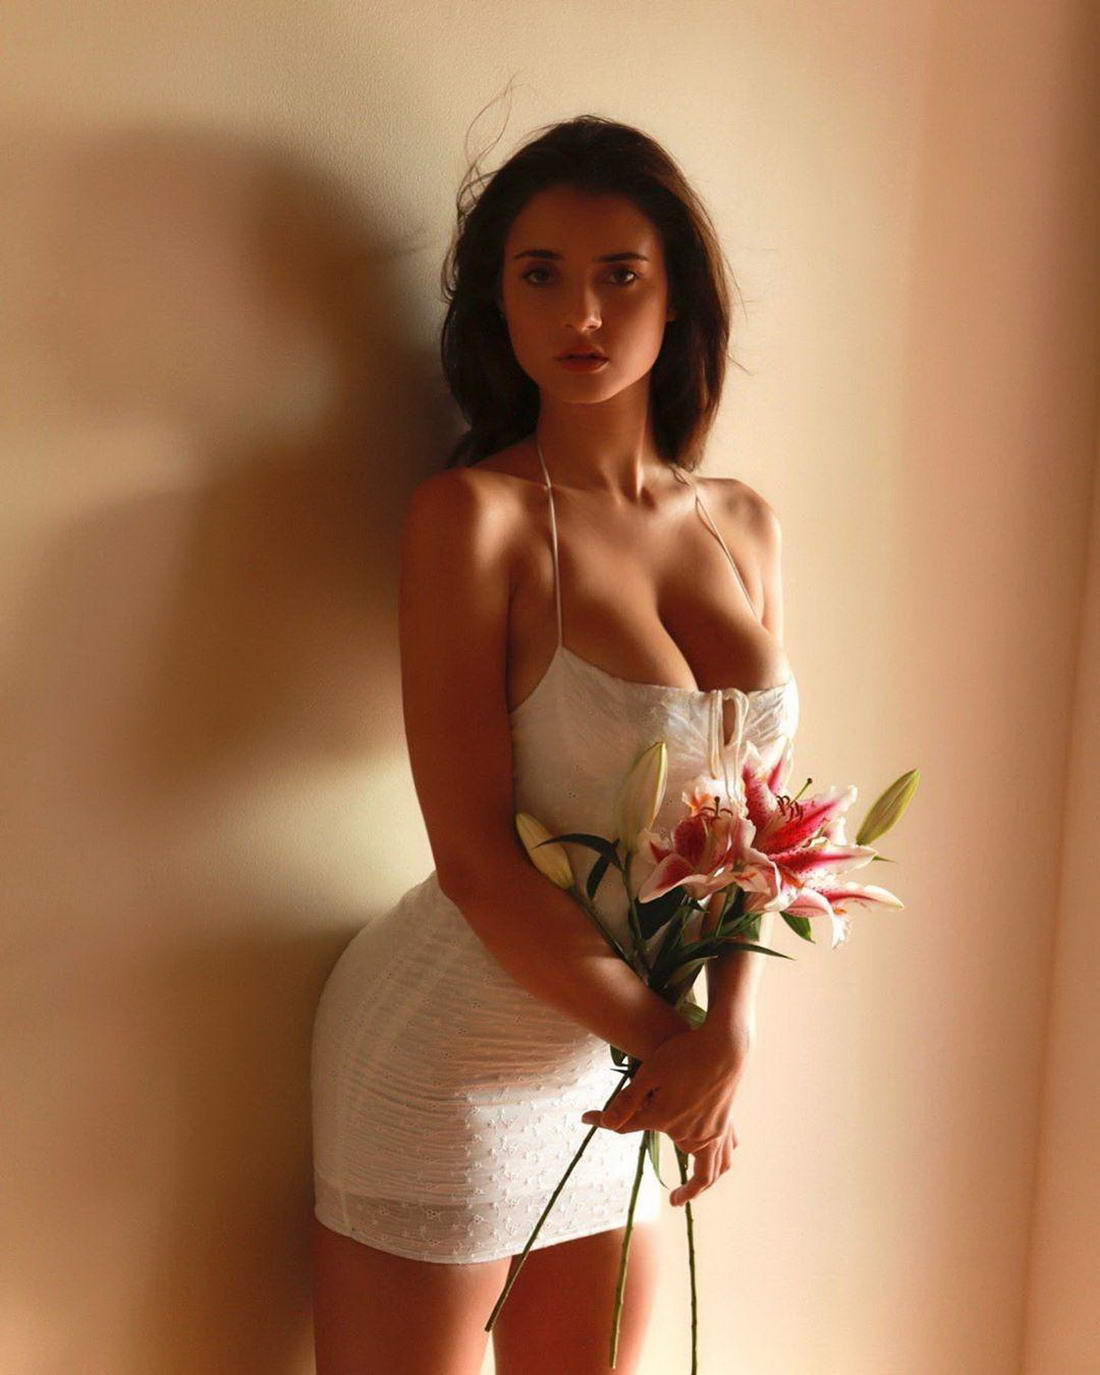 Hot Girls In Tight Dresses (39 Photos)